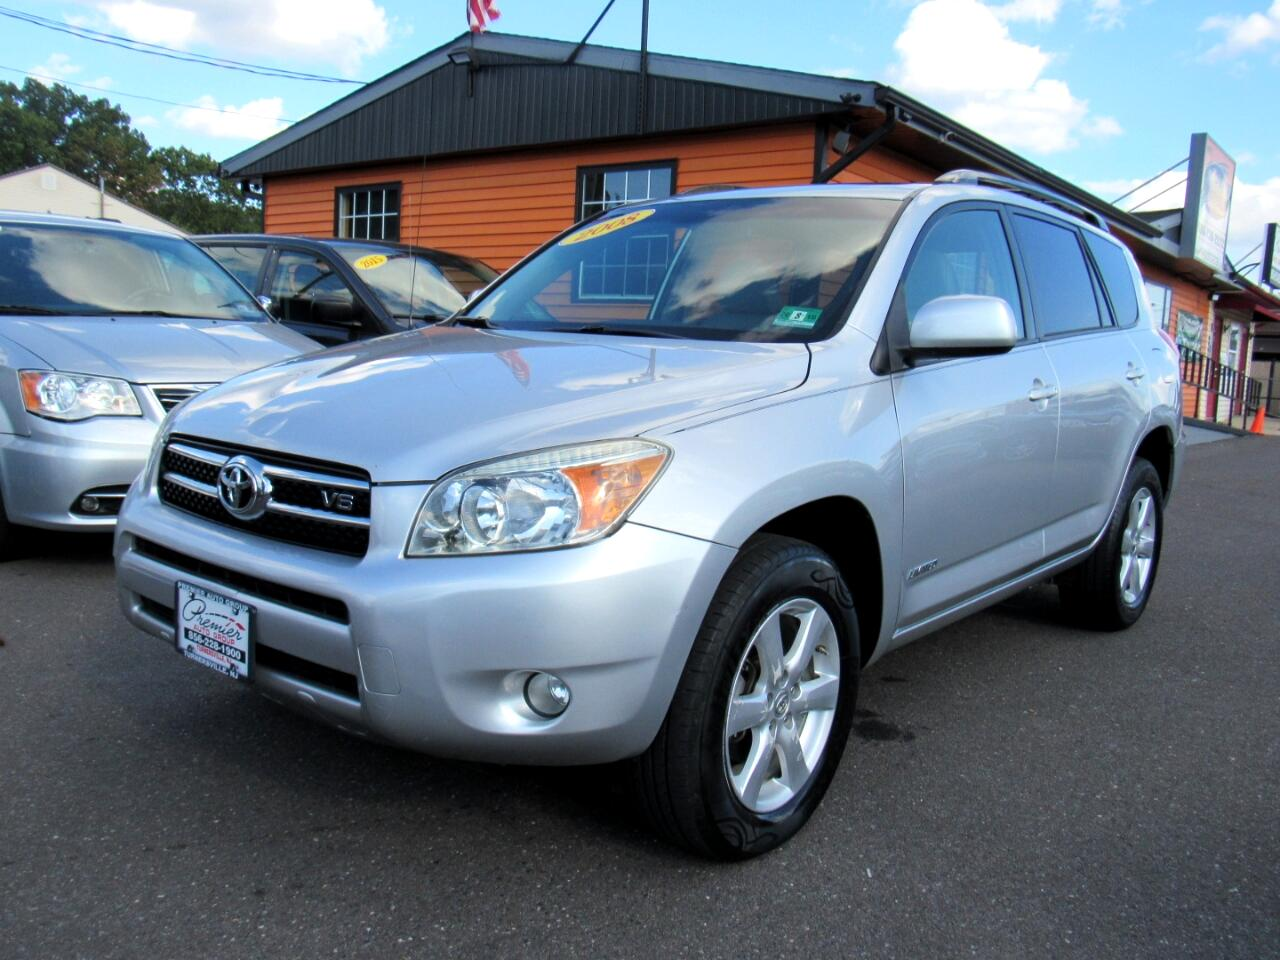 2008 Toyota RAV4 4WD 4dr V6 5-Spd AT Ltd (Natl)